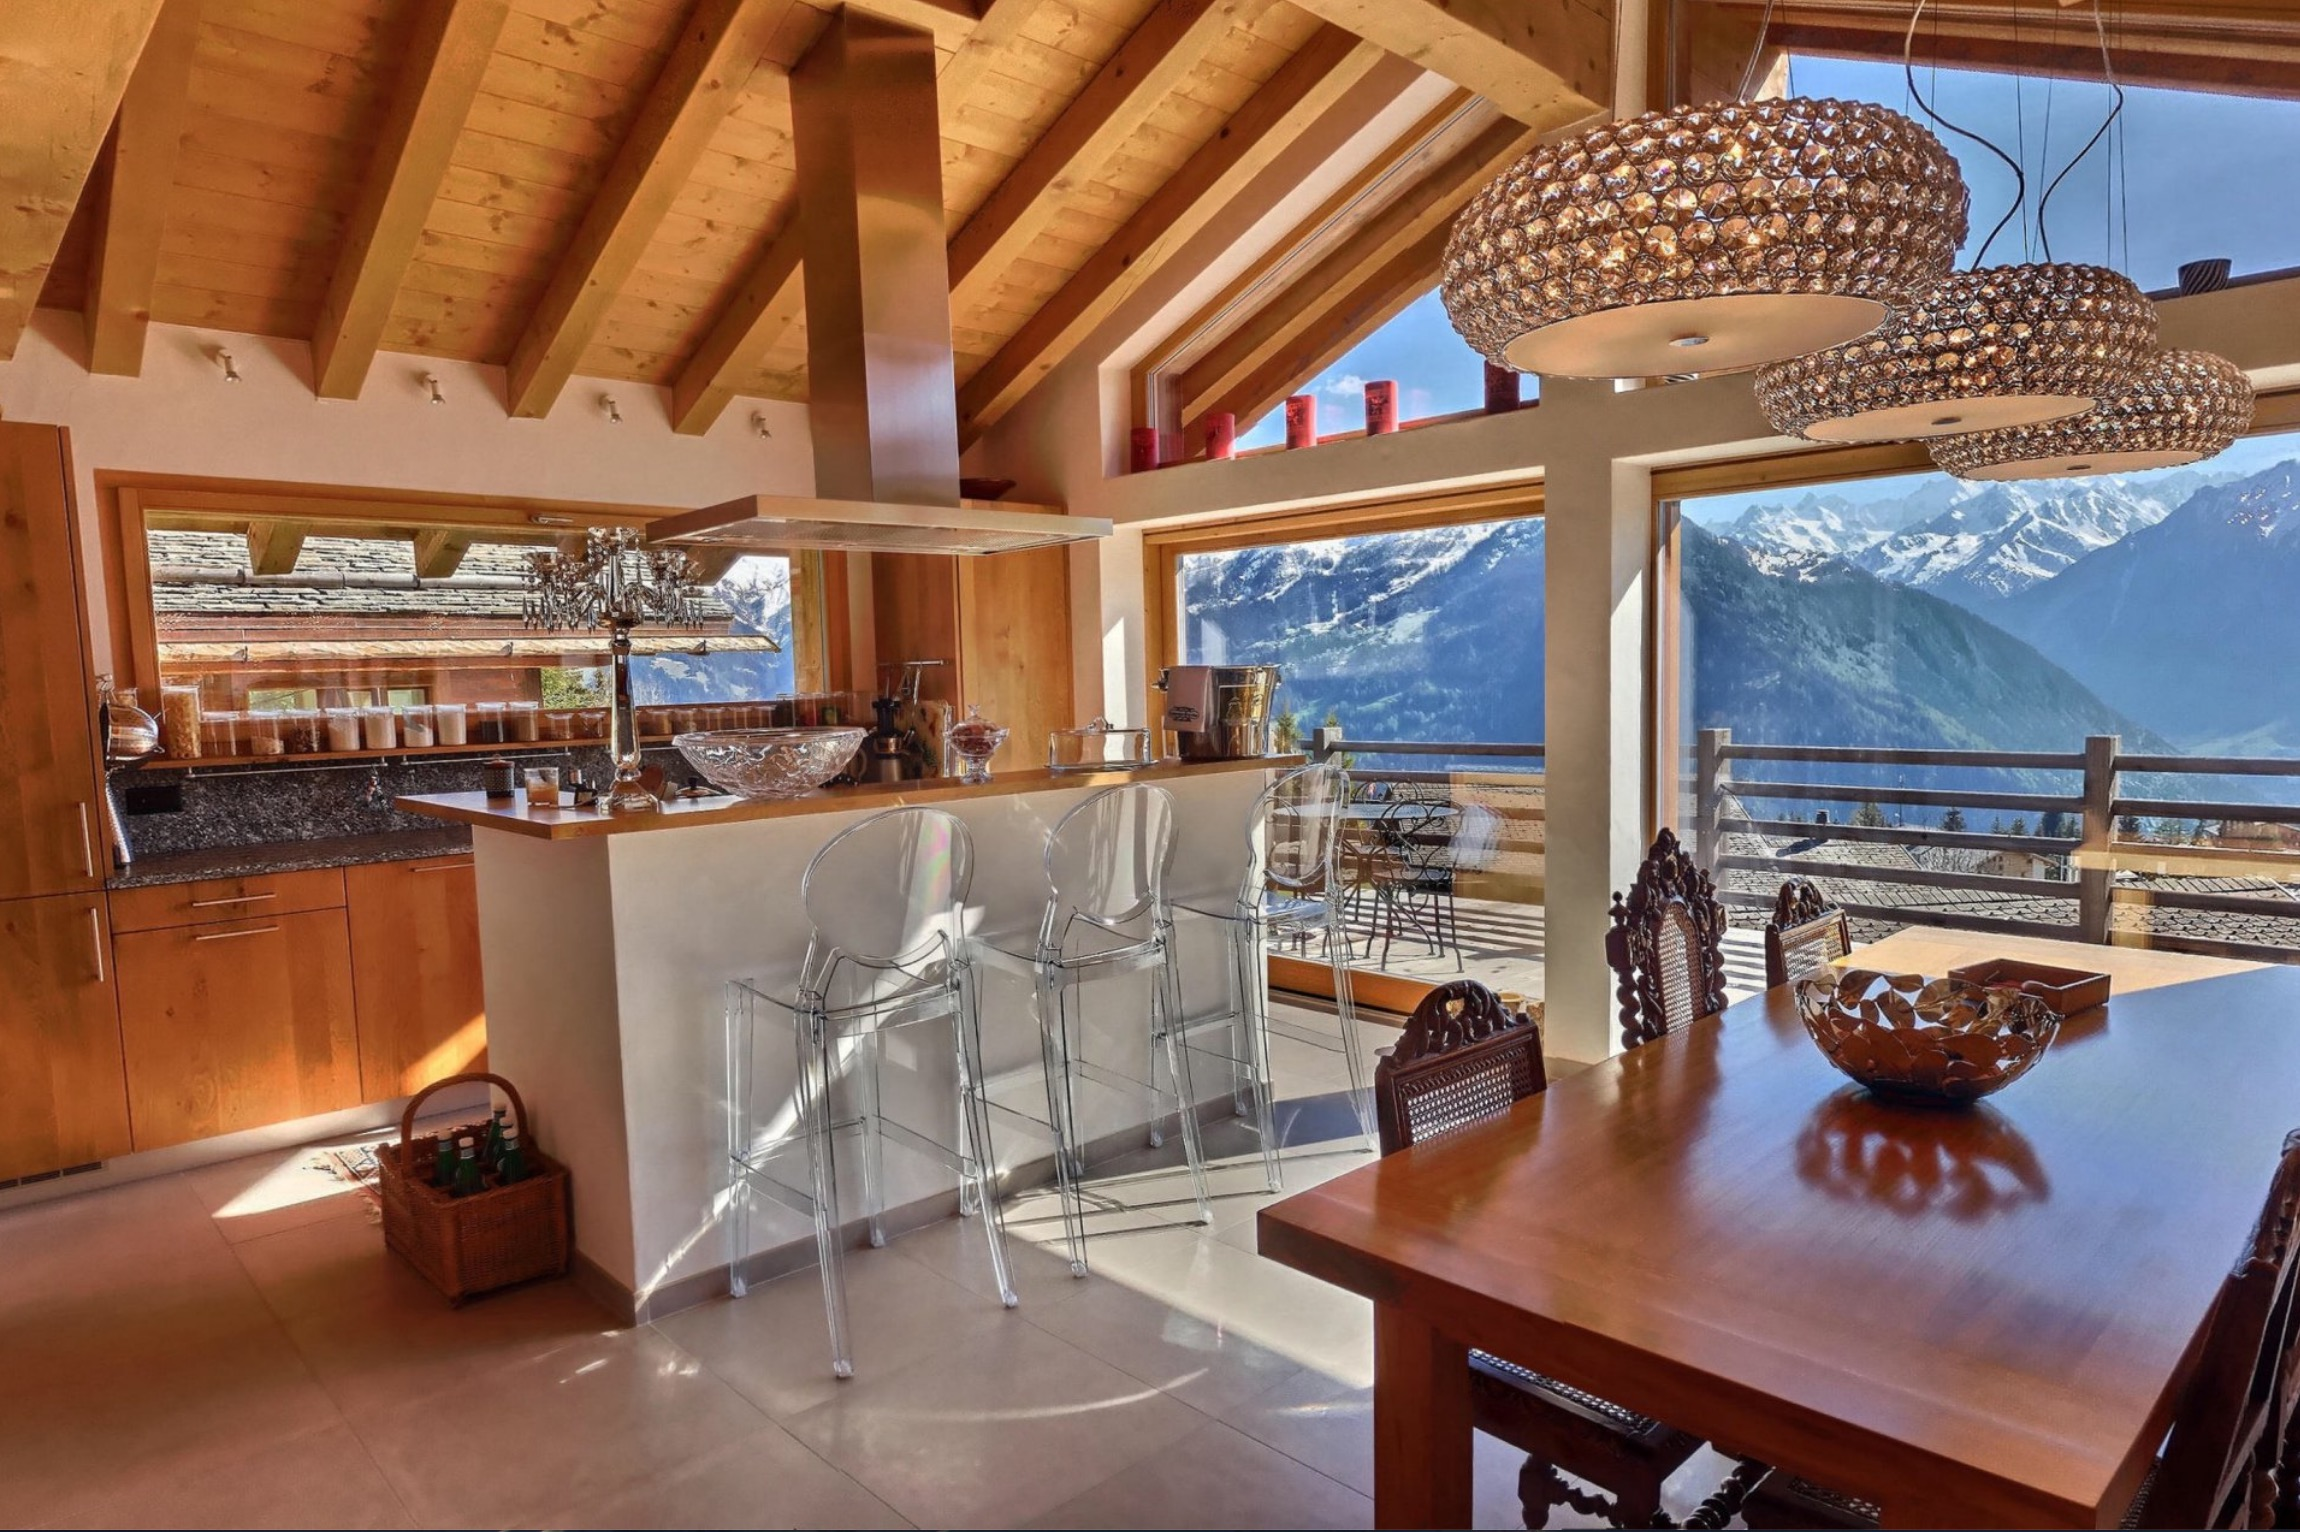 Chalet IV living area in verbier property for slae with good interior design